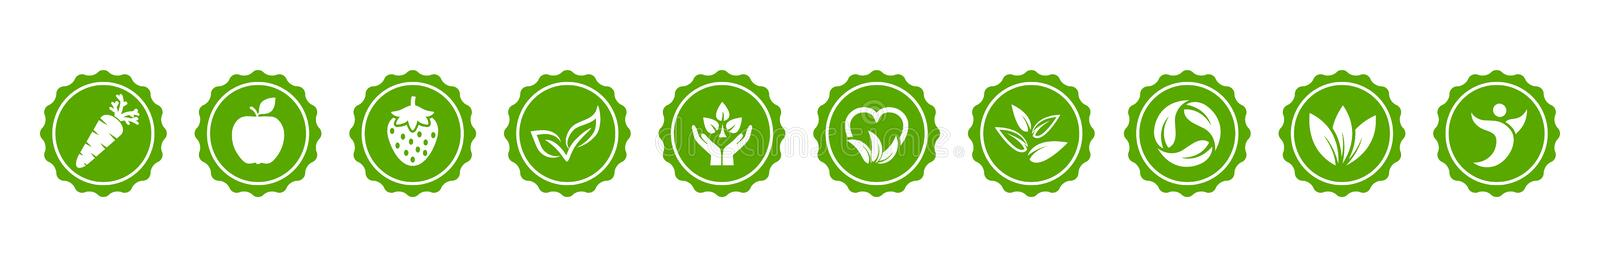 Vegan green bio button icons set with carrot, apple, strawberry and leaves sign – vector vector illustration